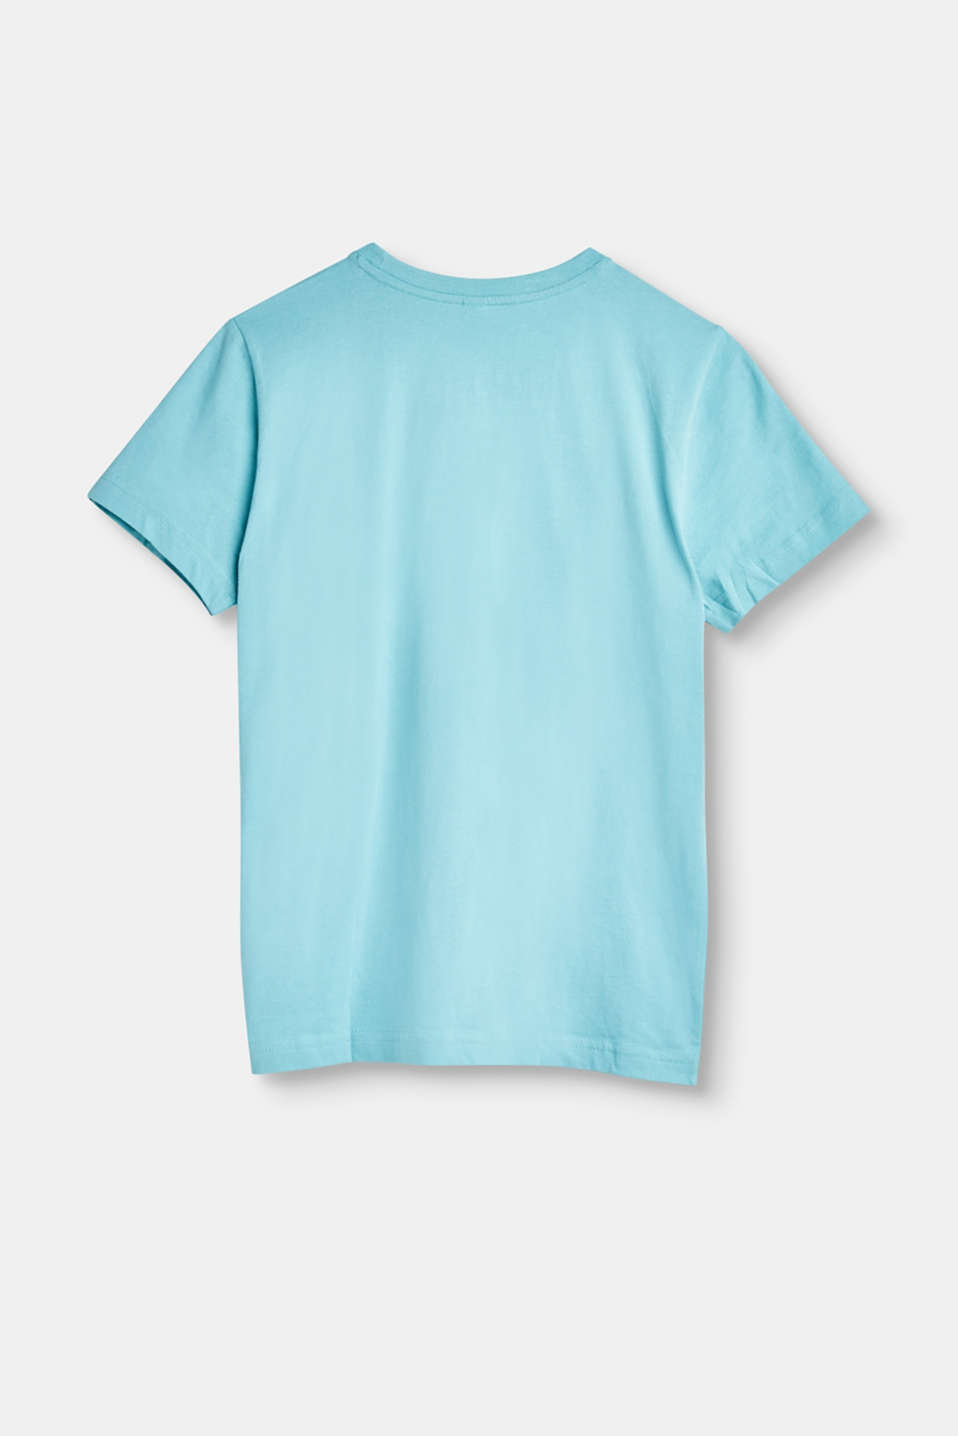 Cotton T-shirt with a front print